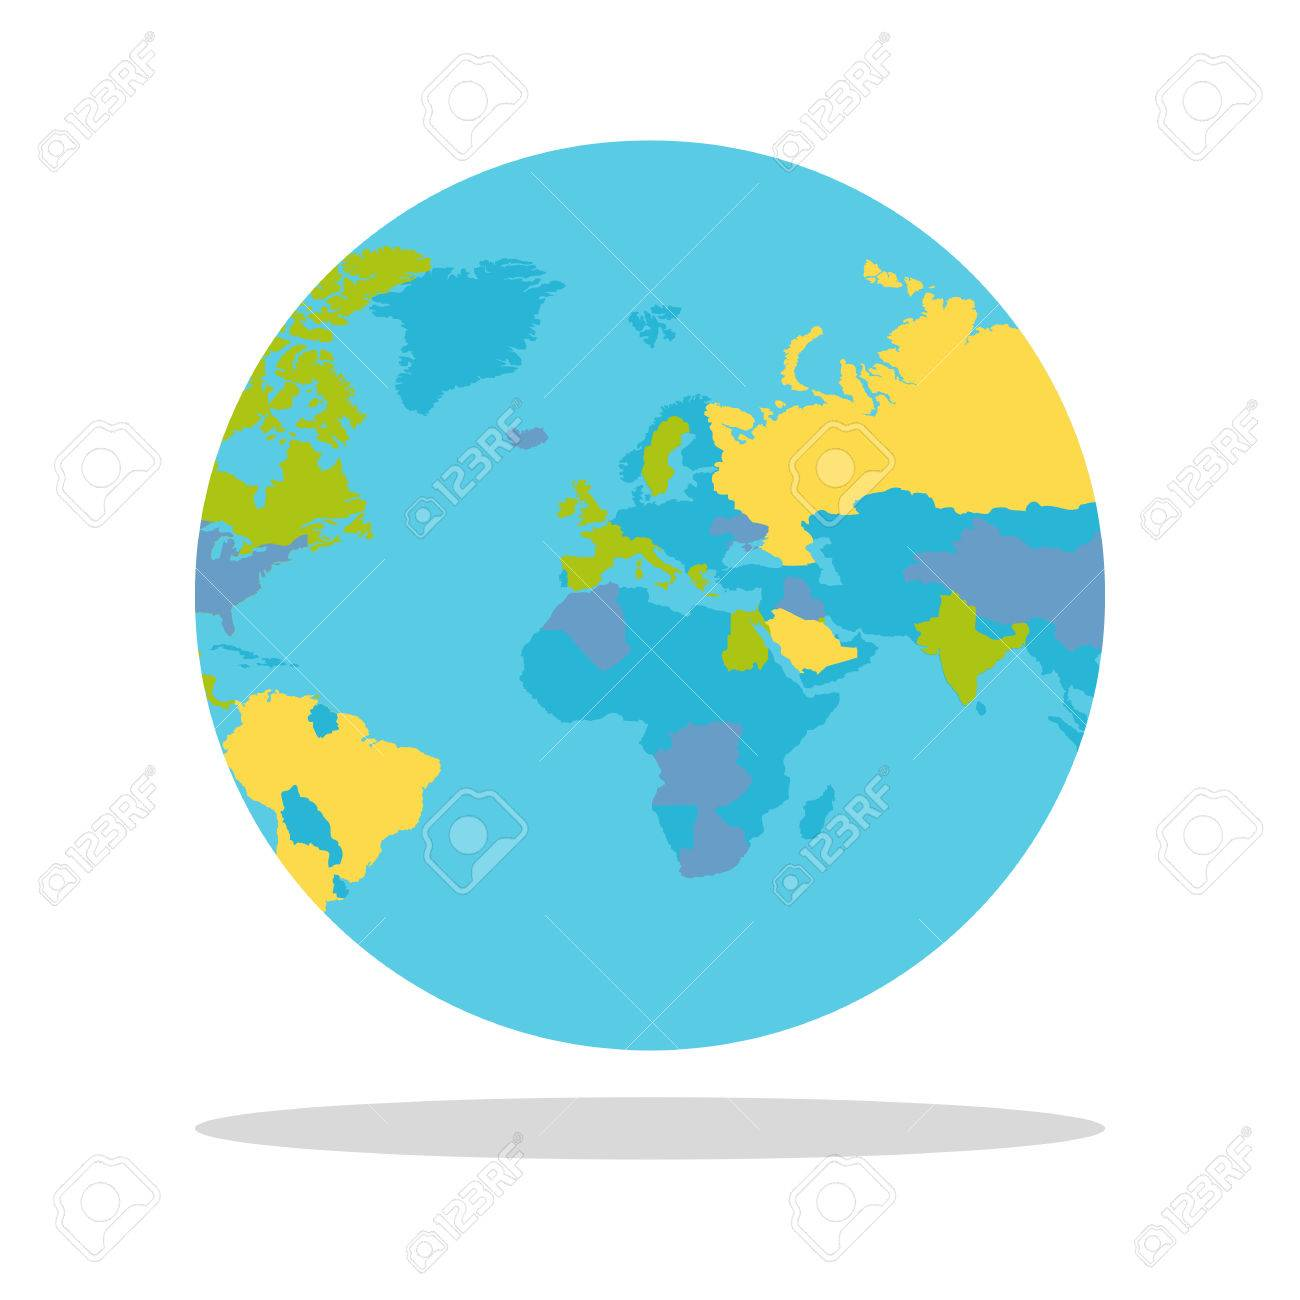 planet earth vector illustration world globe with political rh 123rf com world globe vector cdr free download world globe vector art